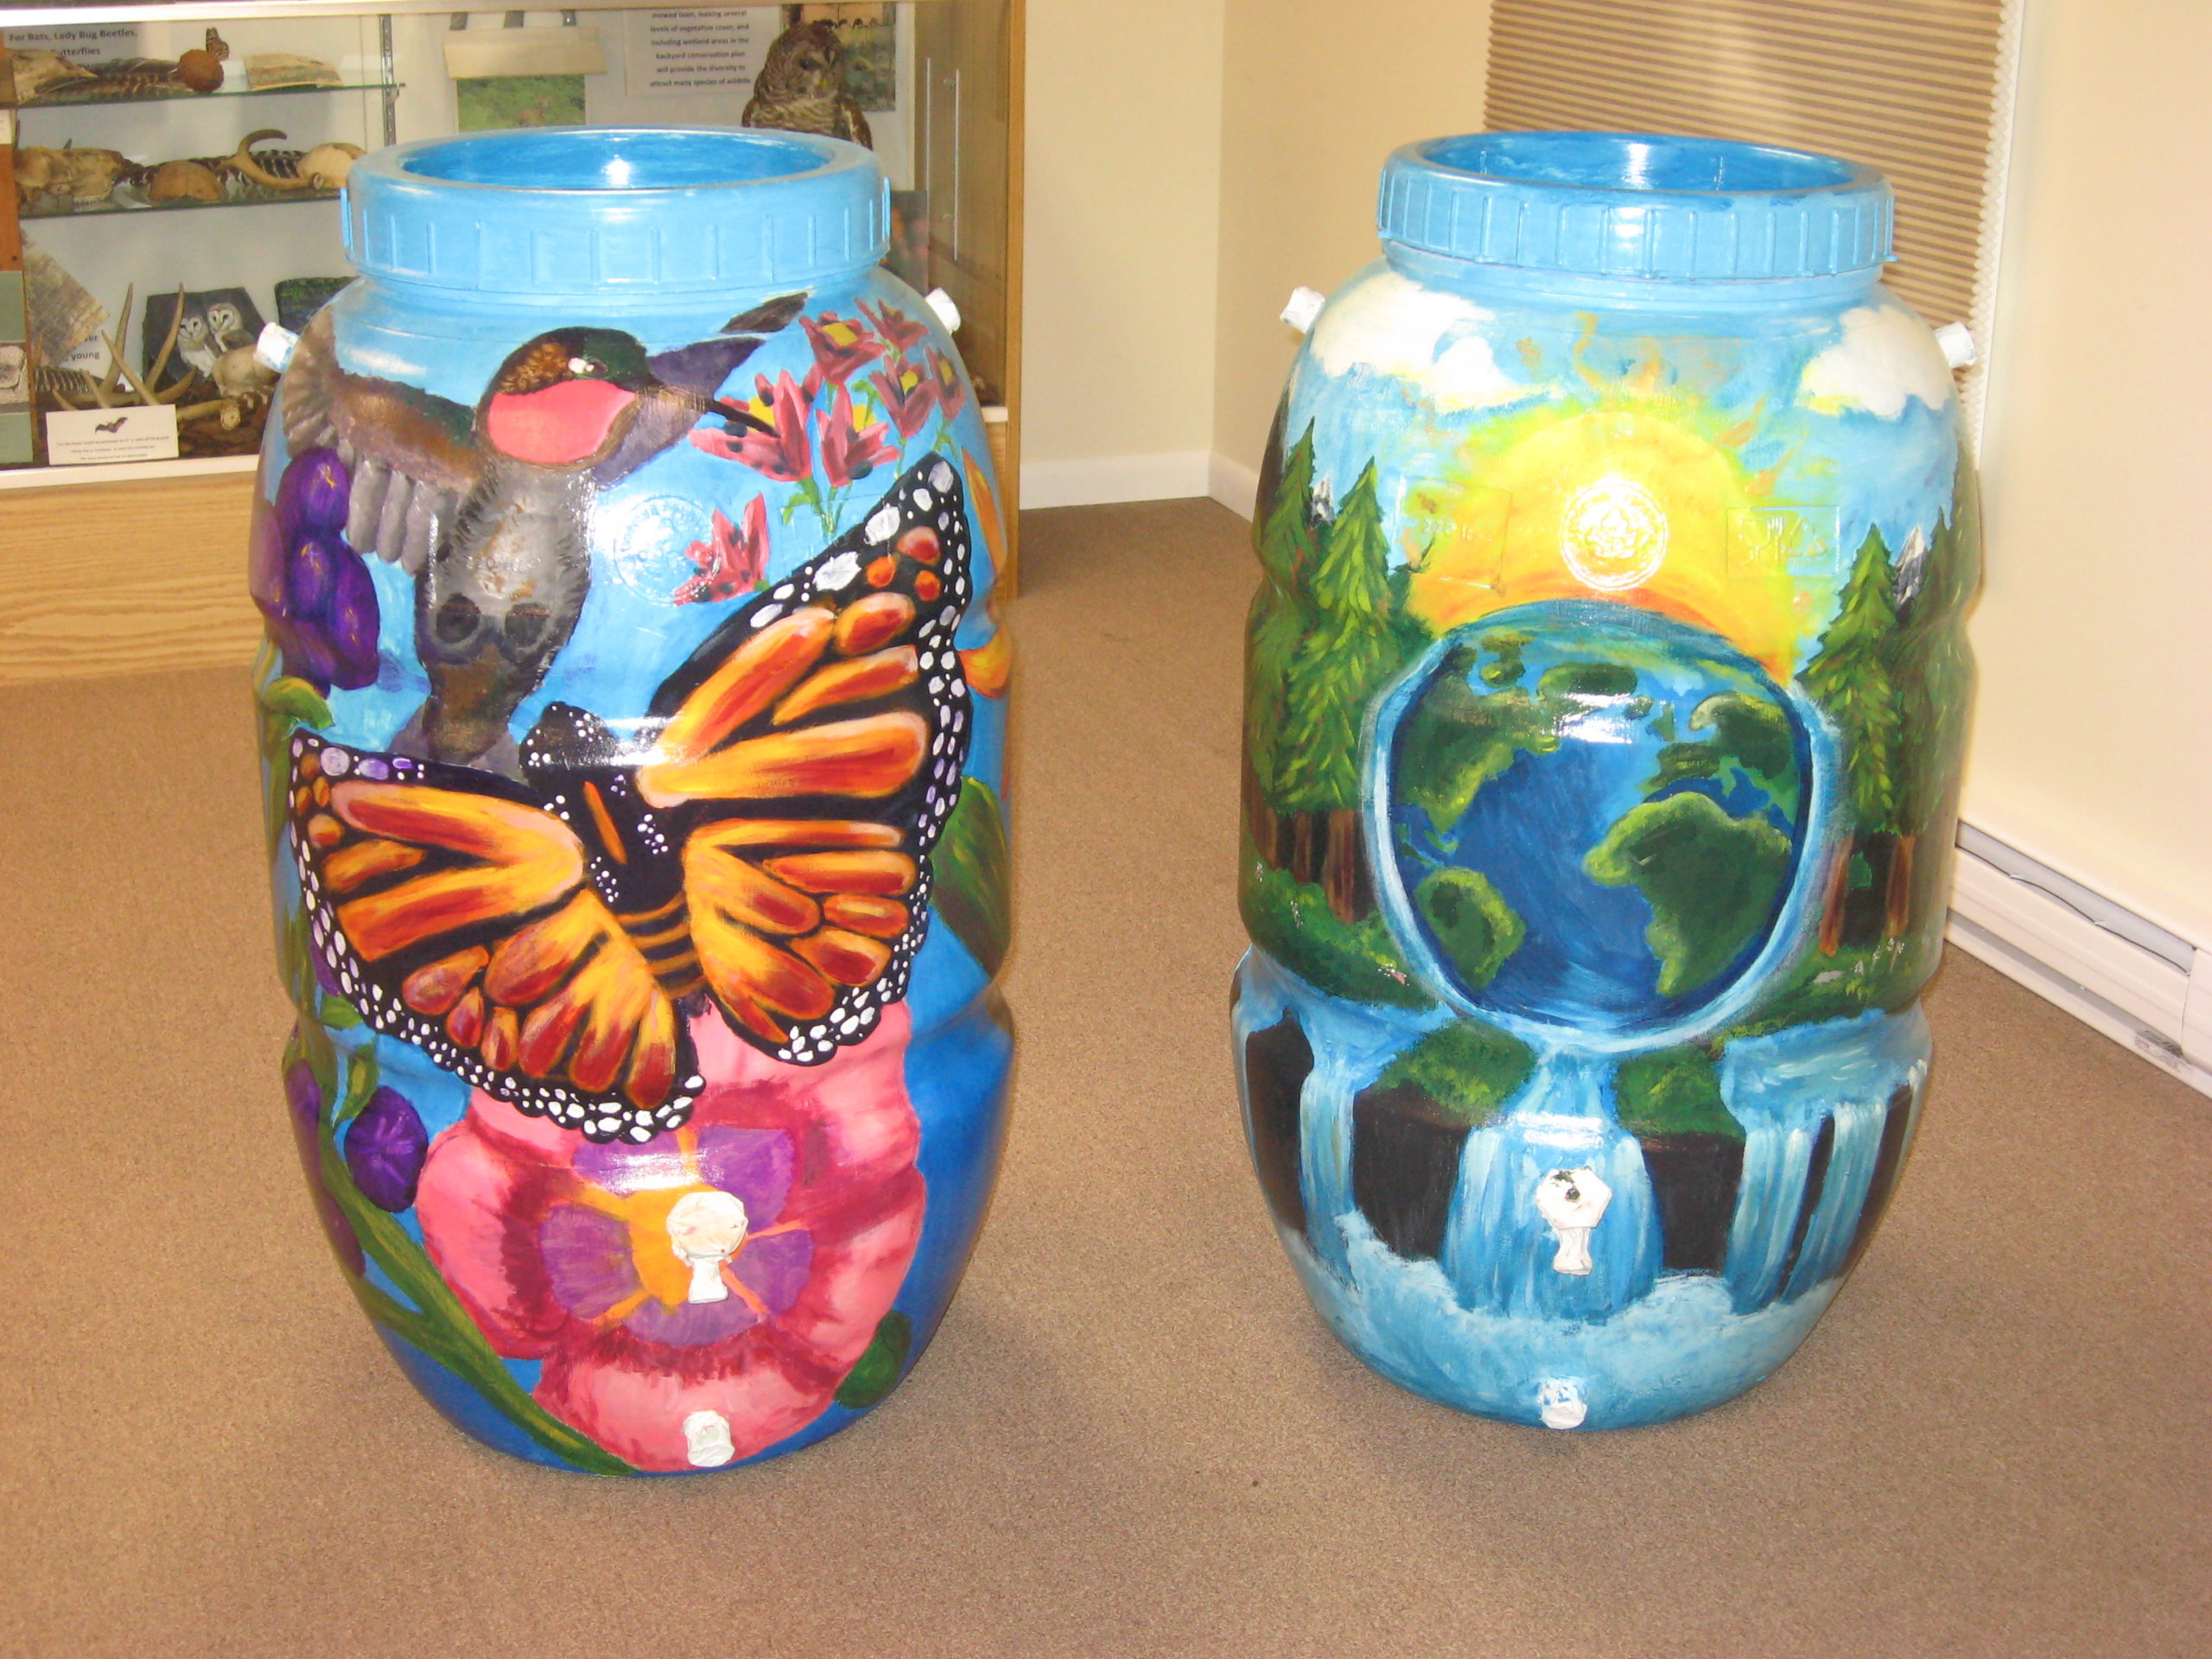 Two decoratively painted rain barrels made by the conservation district